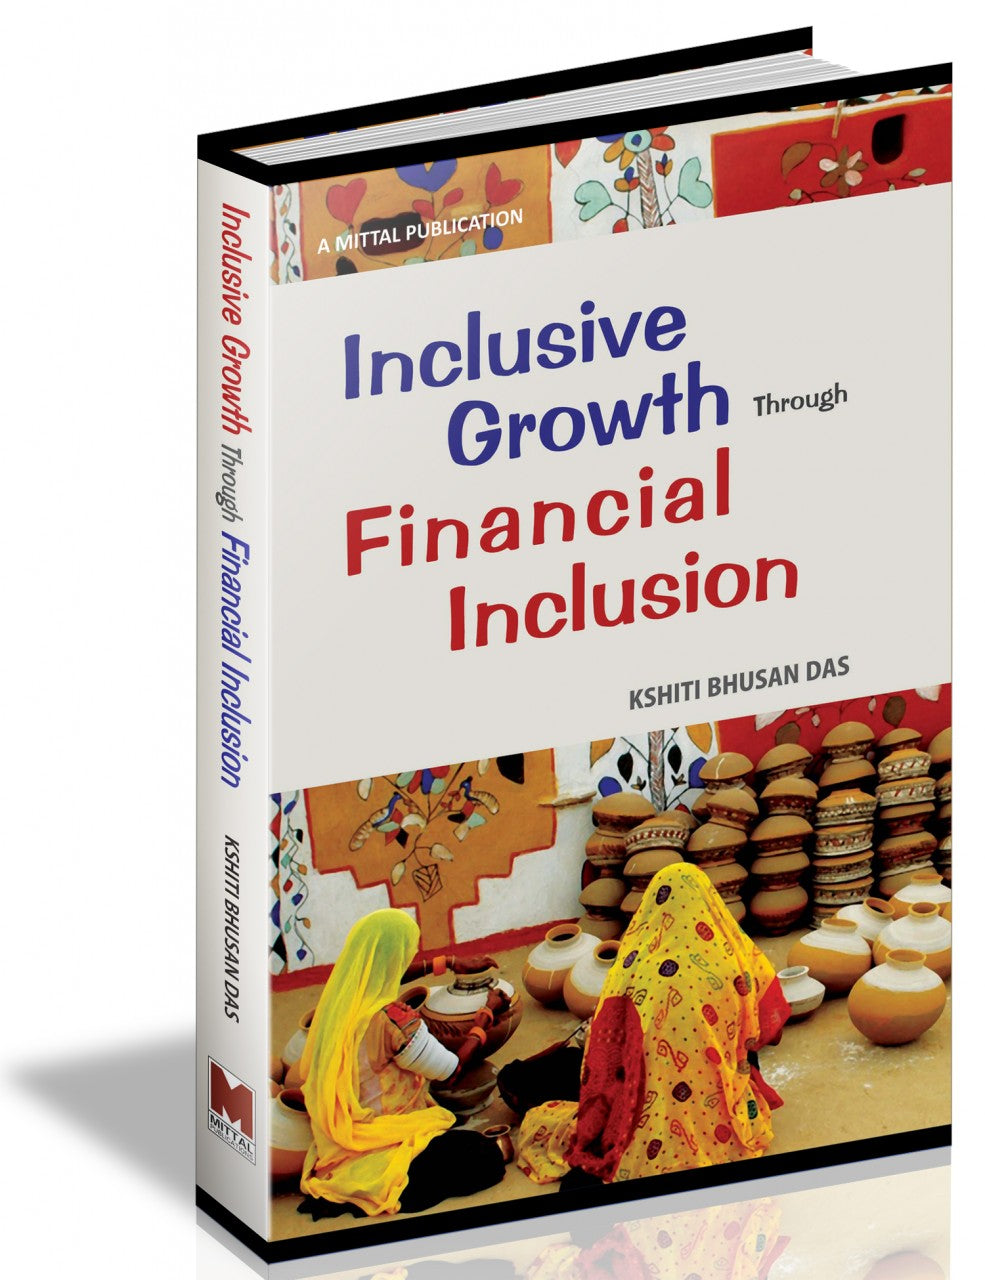 Inclusive Growth through Financial Inclusion